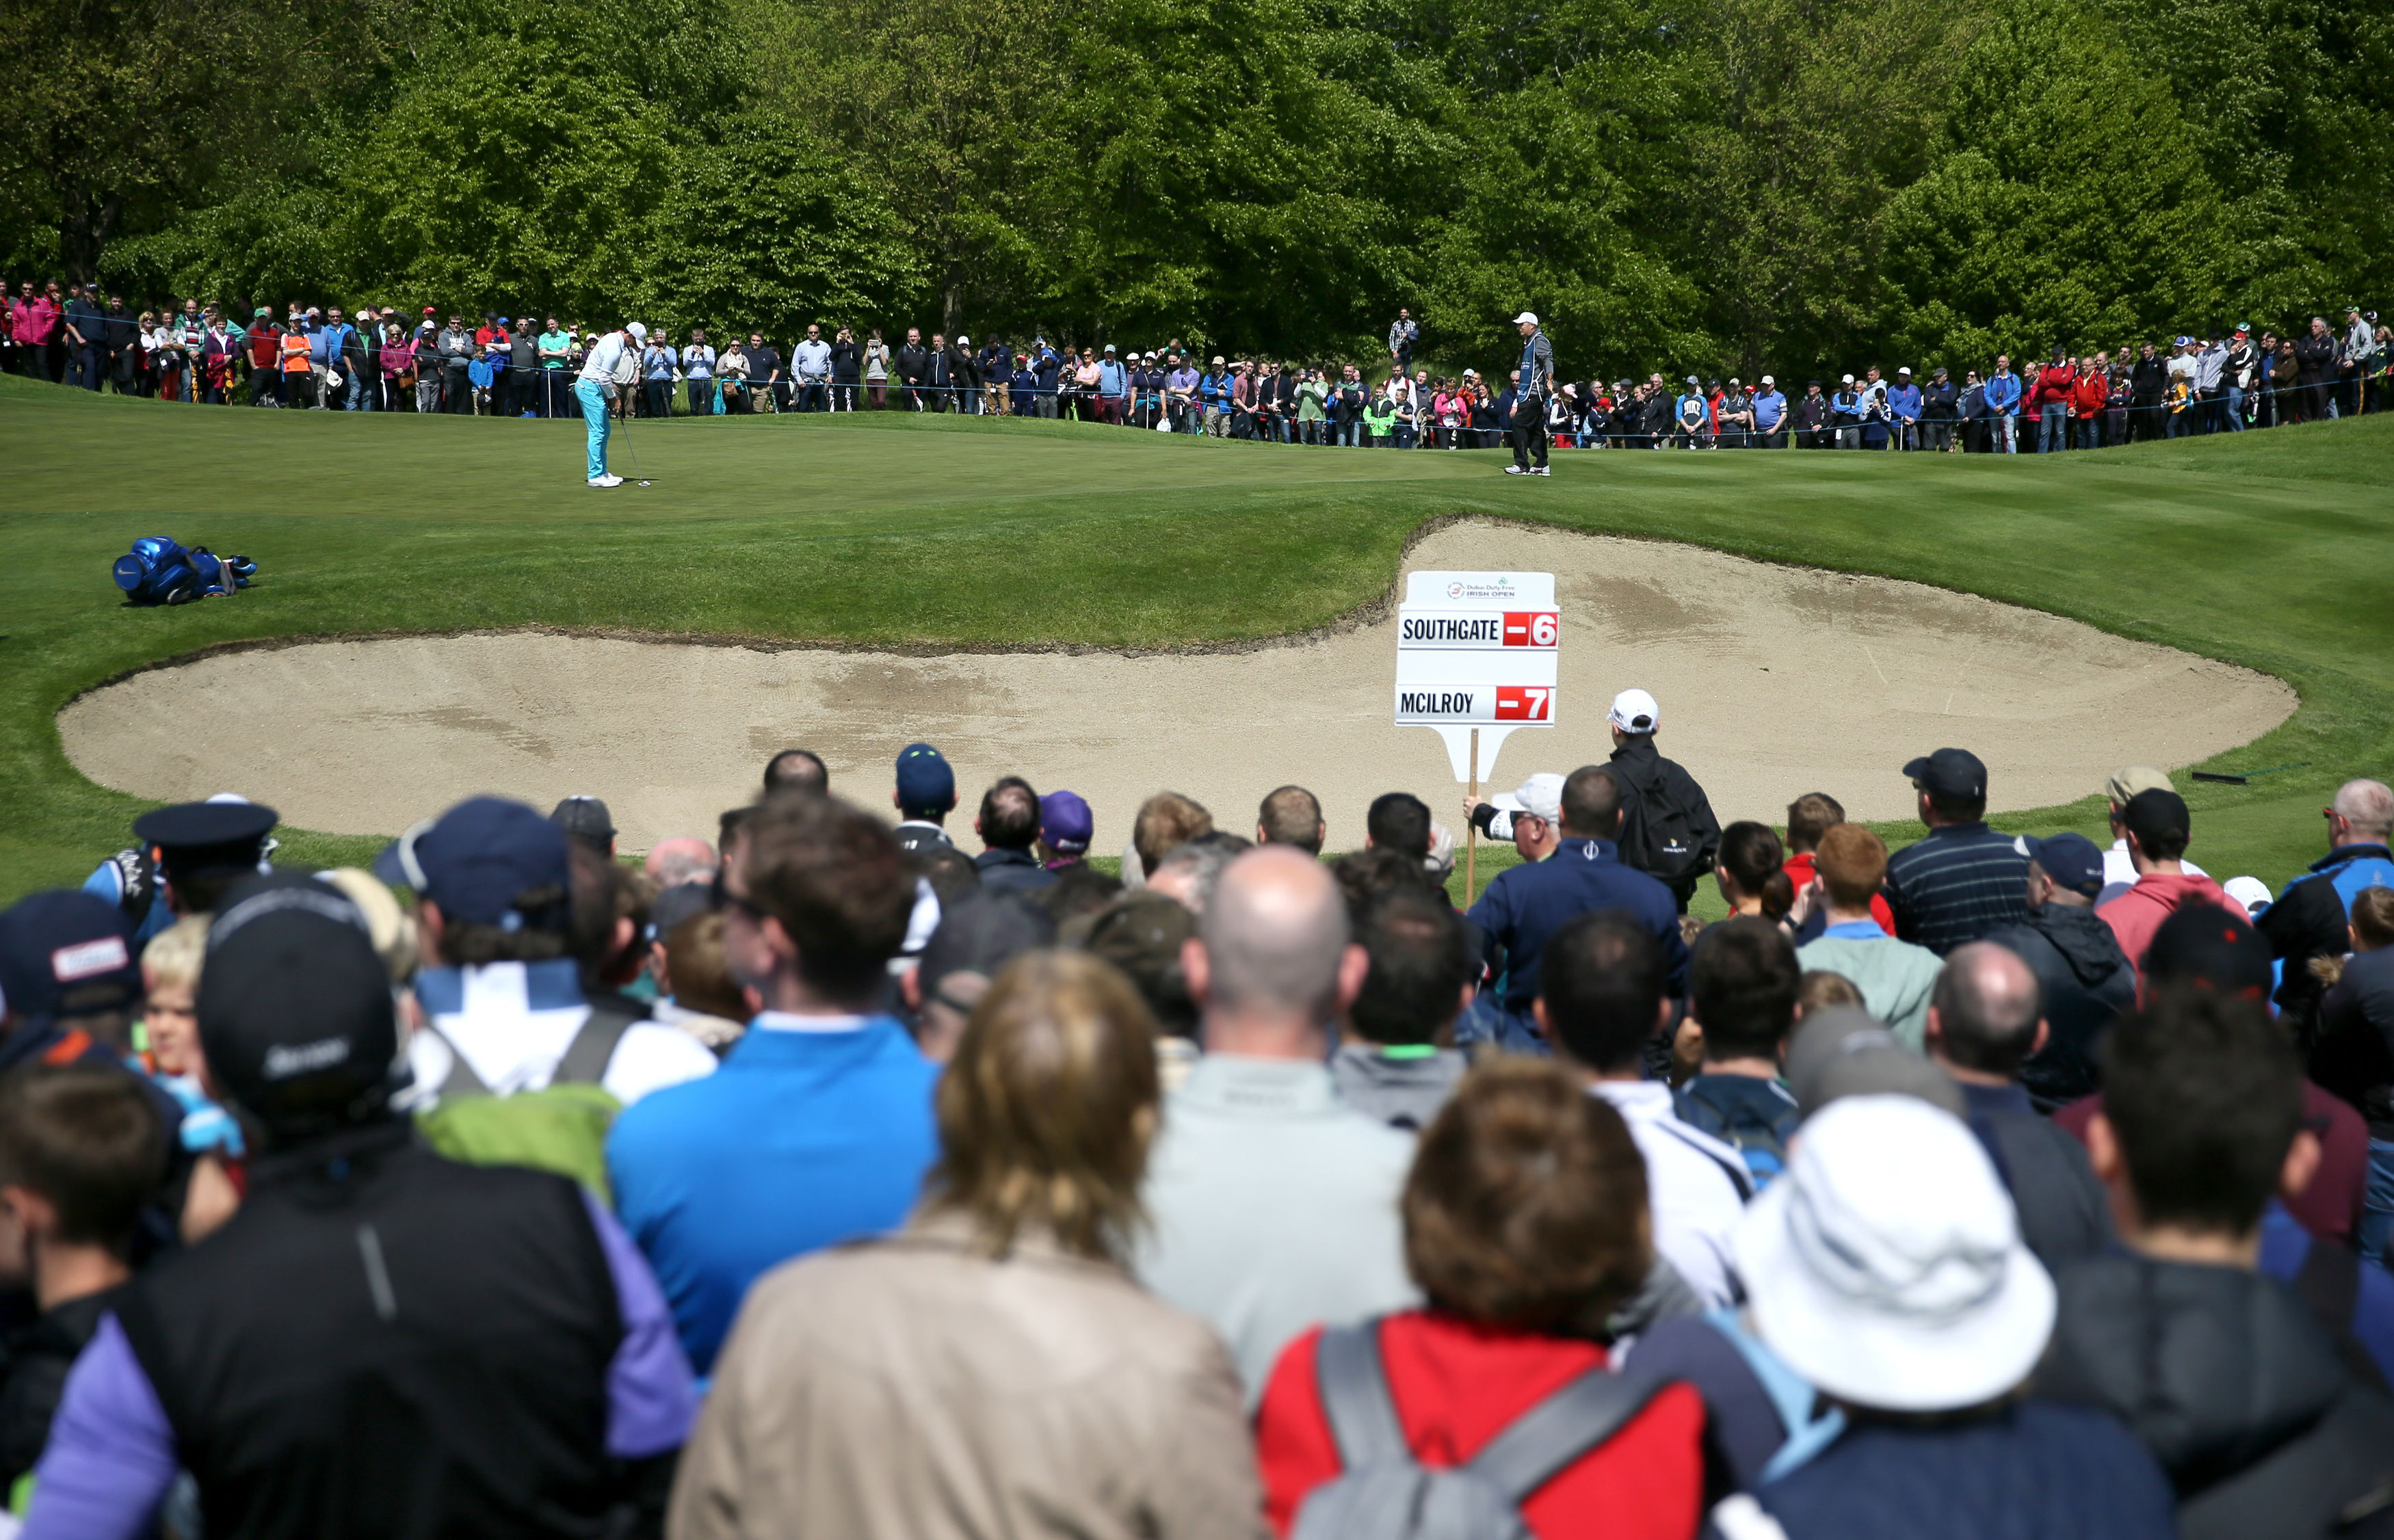 Northern Ireland's Rory McIlroy putts on the 2nd green during day three of the Irish Open at The K Club, County Kildare. Ireland. Saturday May 21, 2016. (Brian Lawless /PA via AP) UNITED KINGDOM OUT - NO SALES - NO ARCHIVES